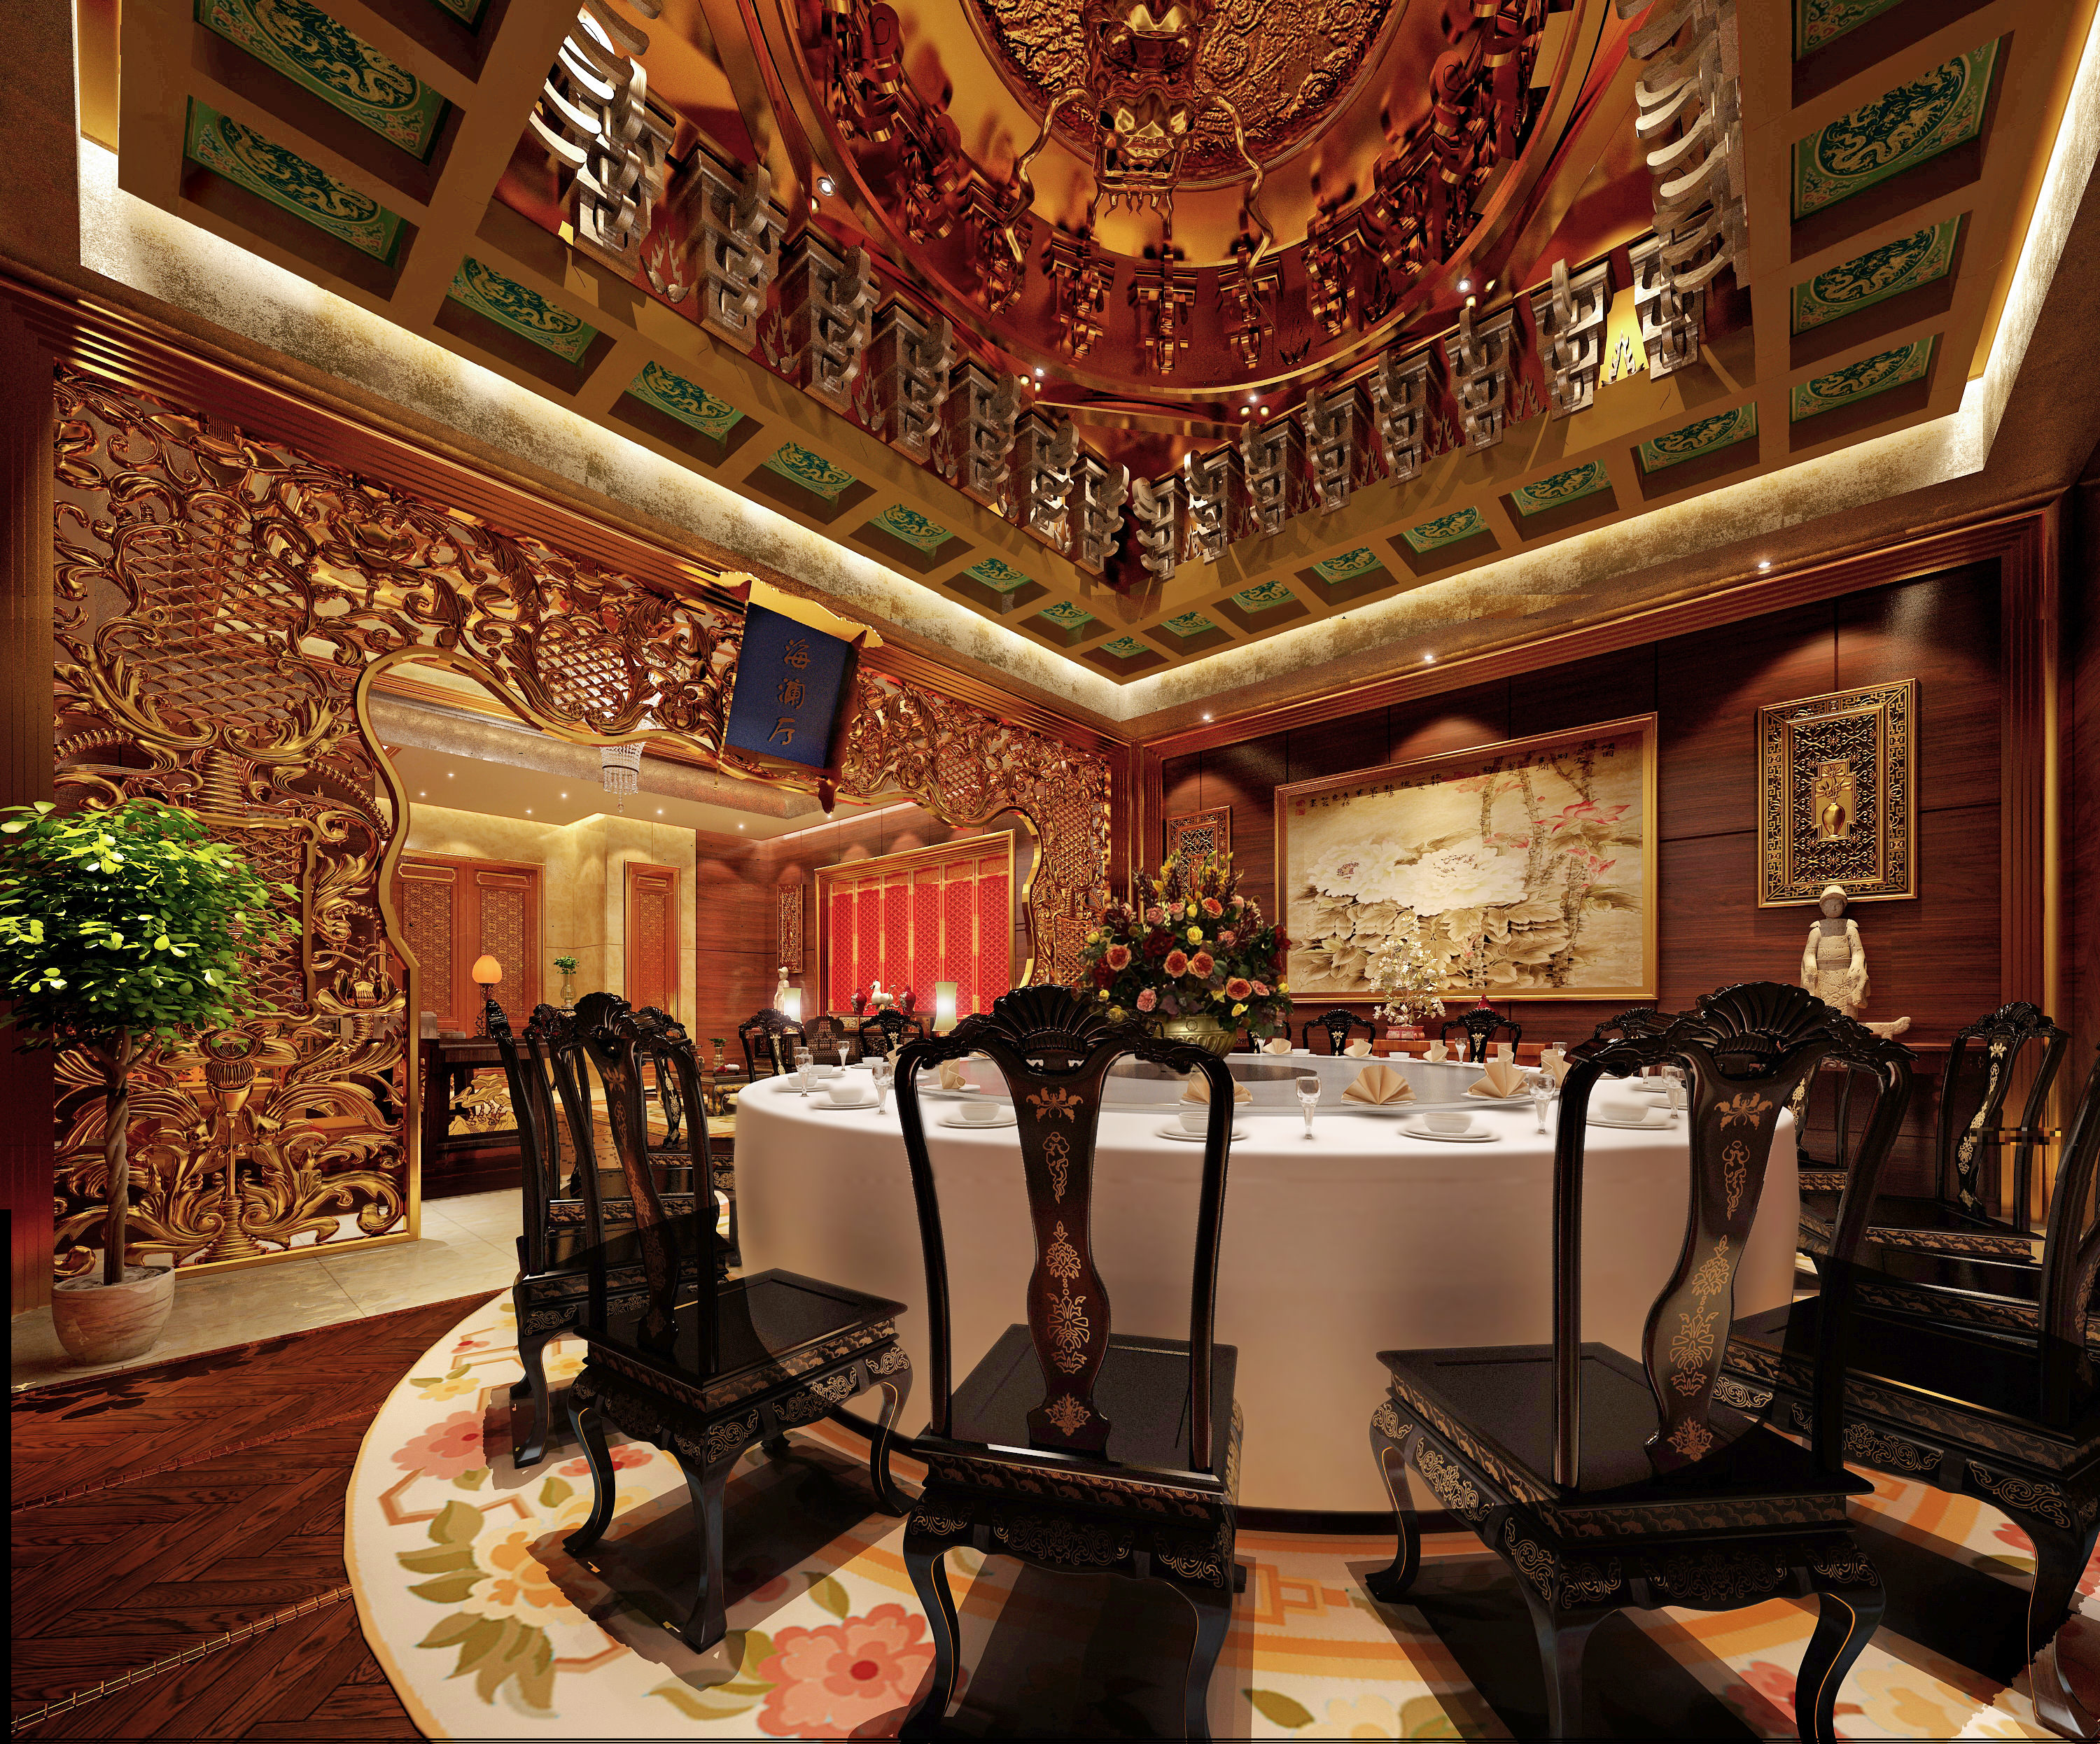 Luxury restaurant with royal decor d model max cgtrader